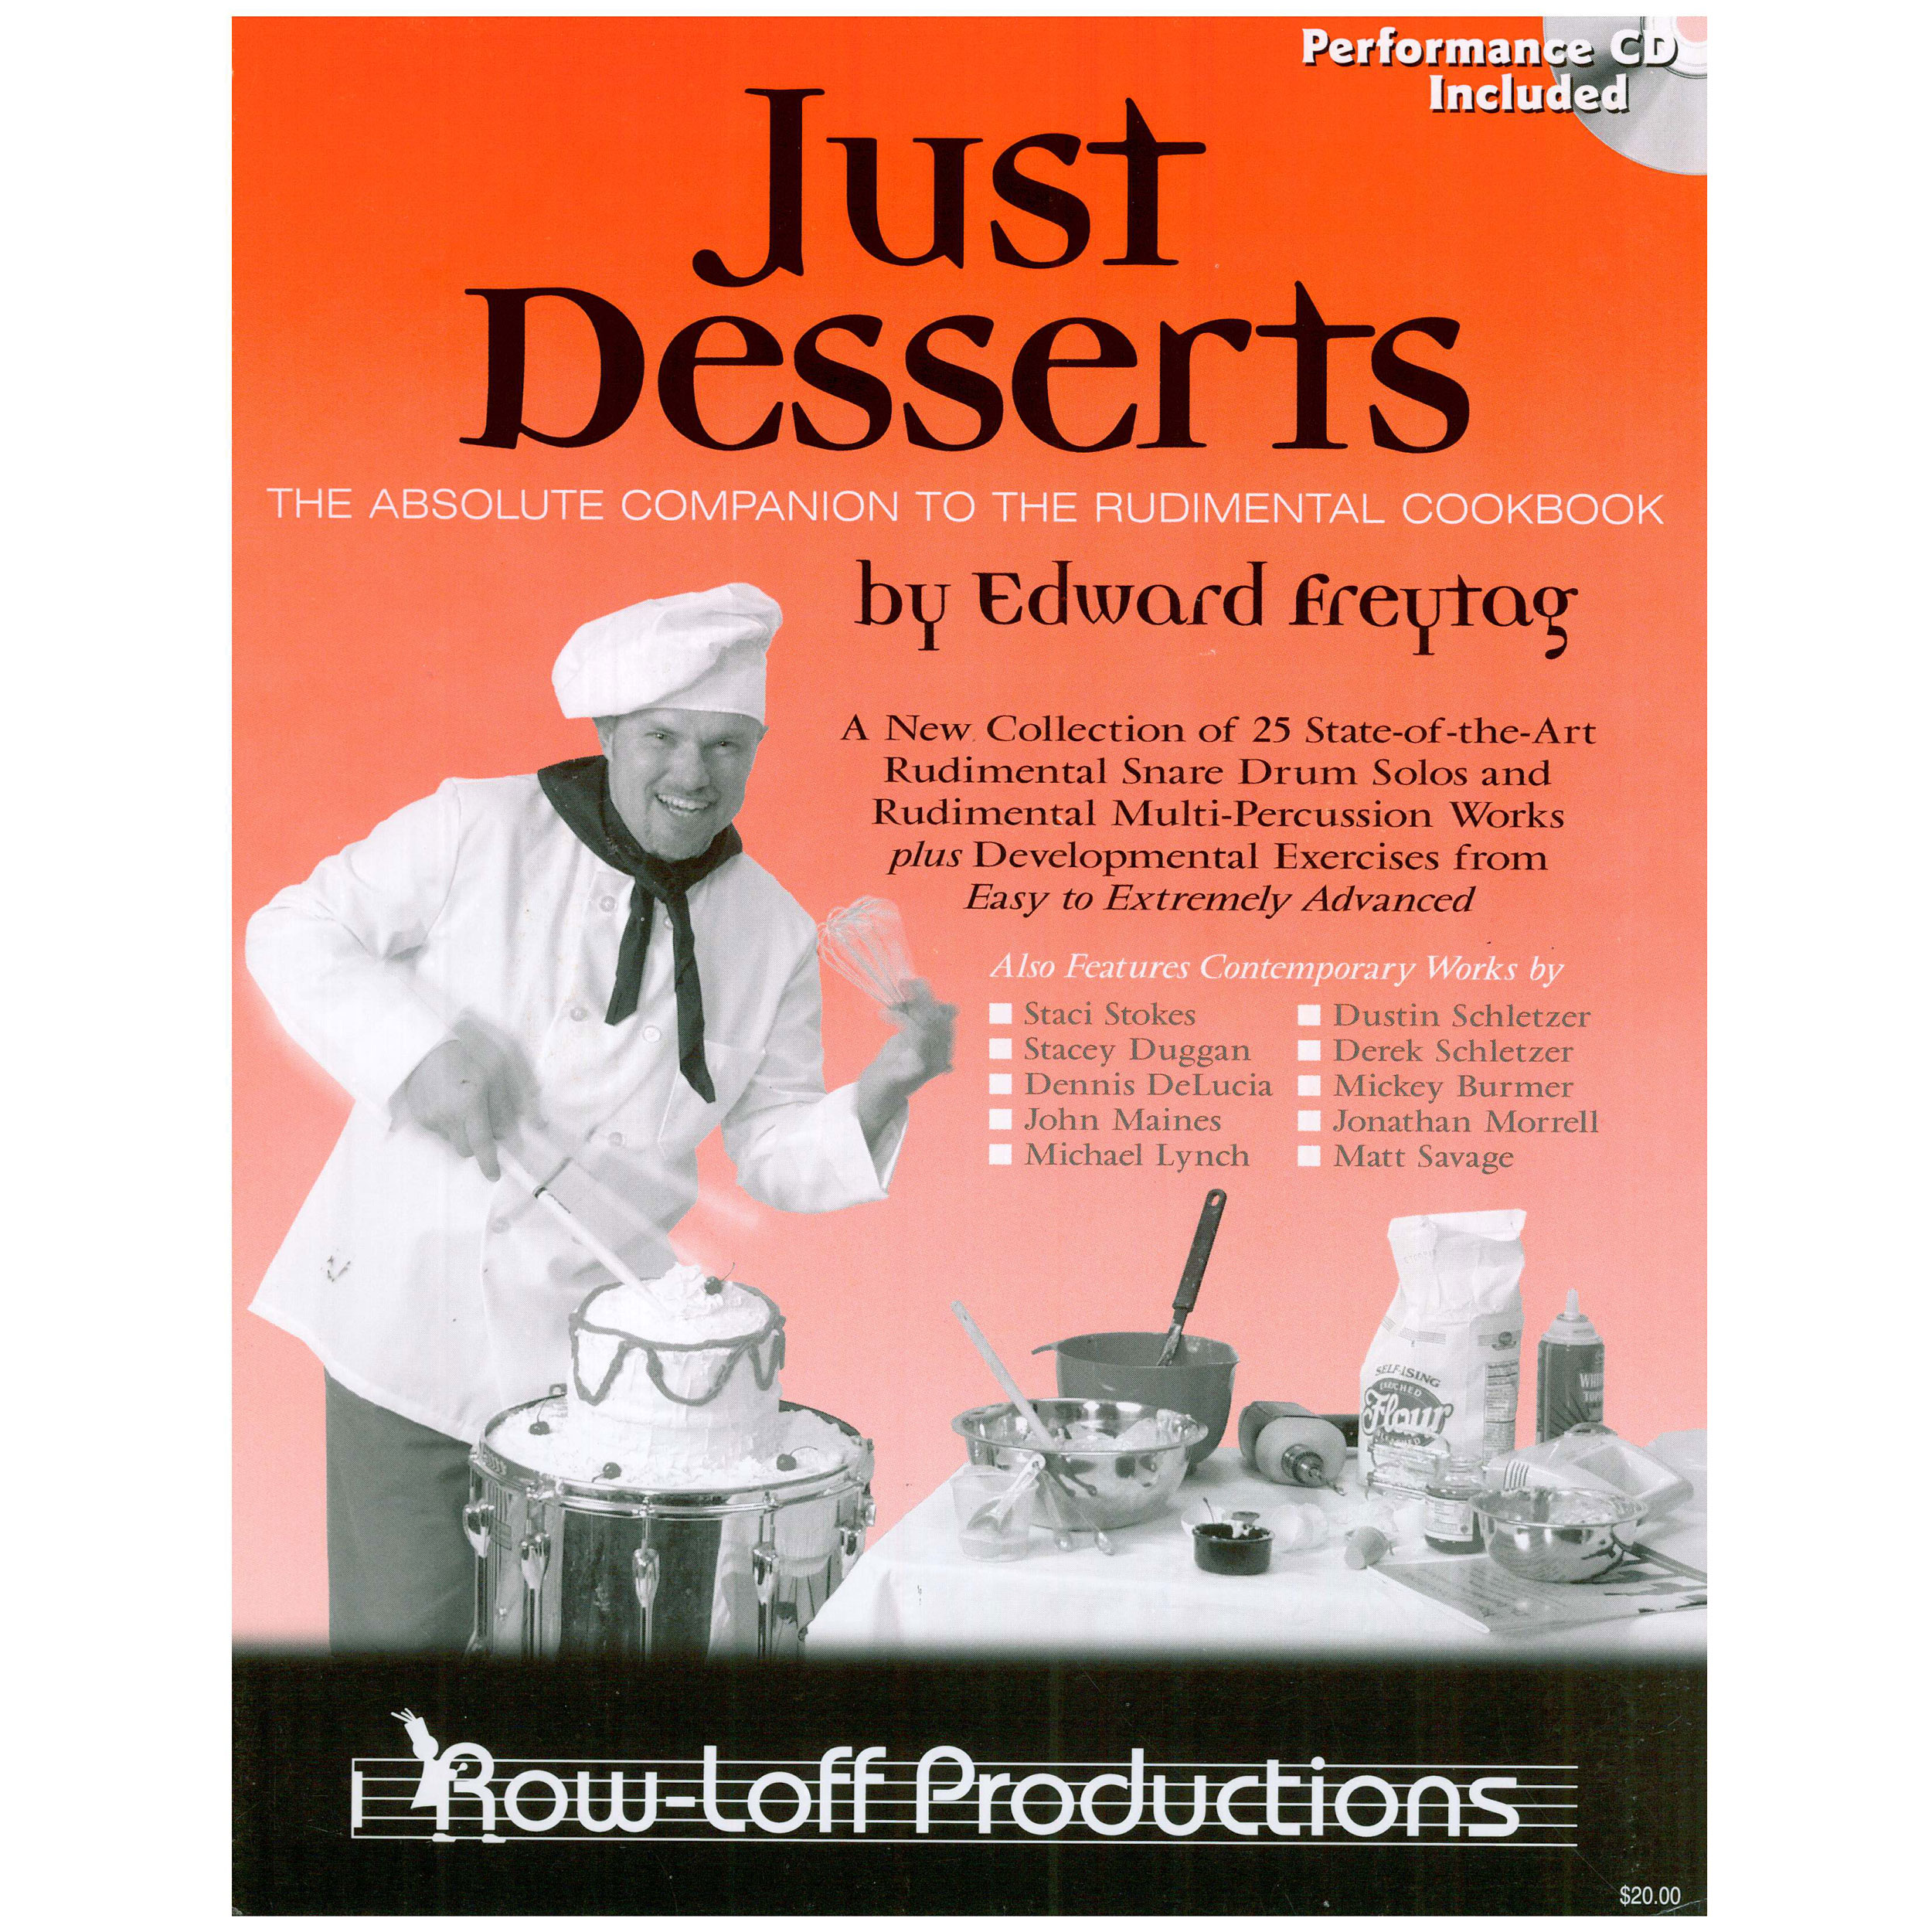 Just Desserts by Edward Freytag